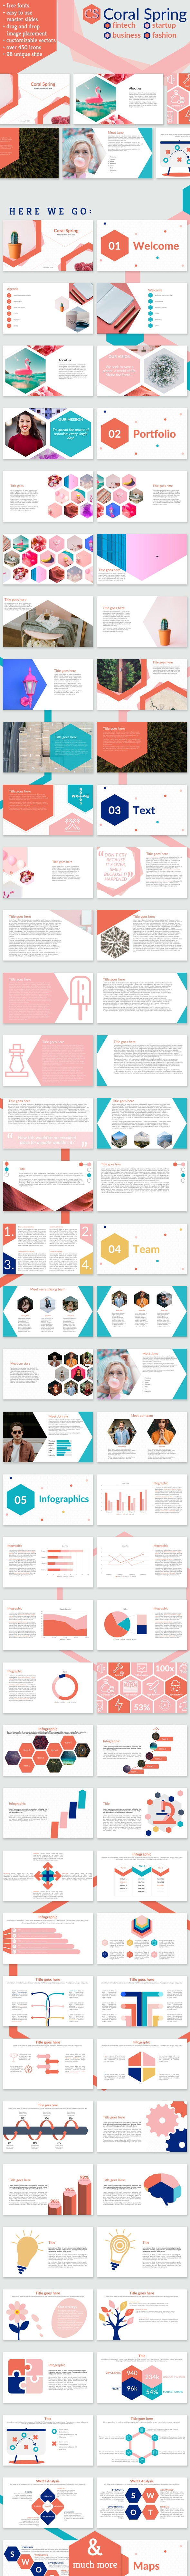 Coral Spring Keynote Fintech Startup Business Presentation - Keynote Templates Presentation Templates